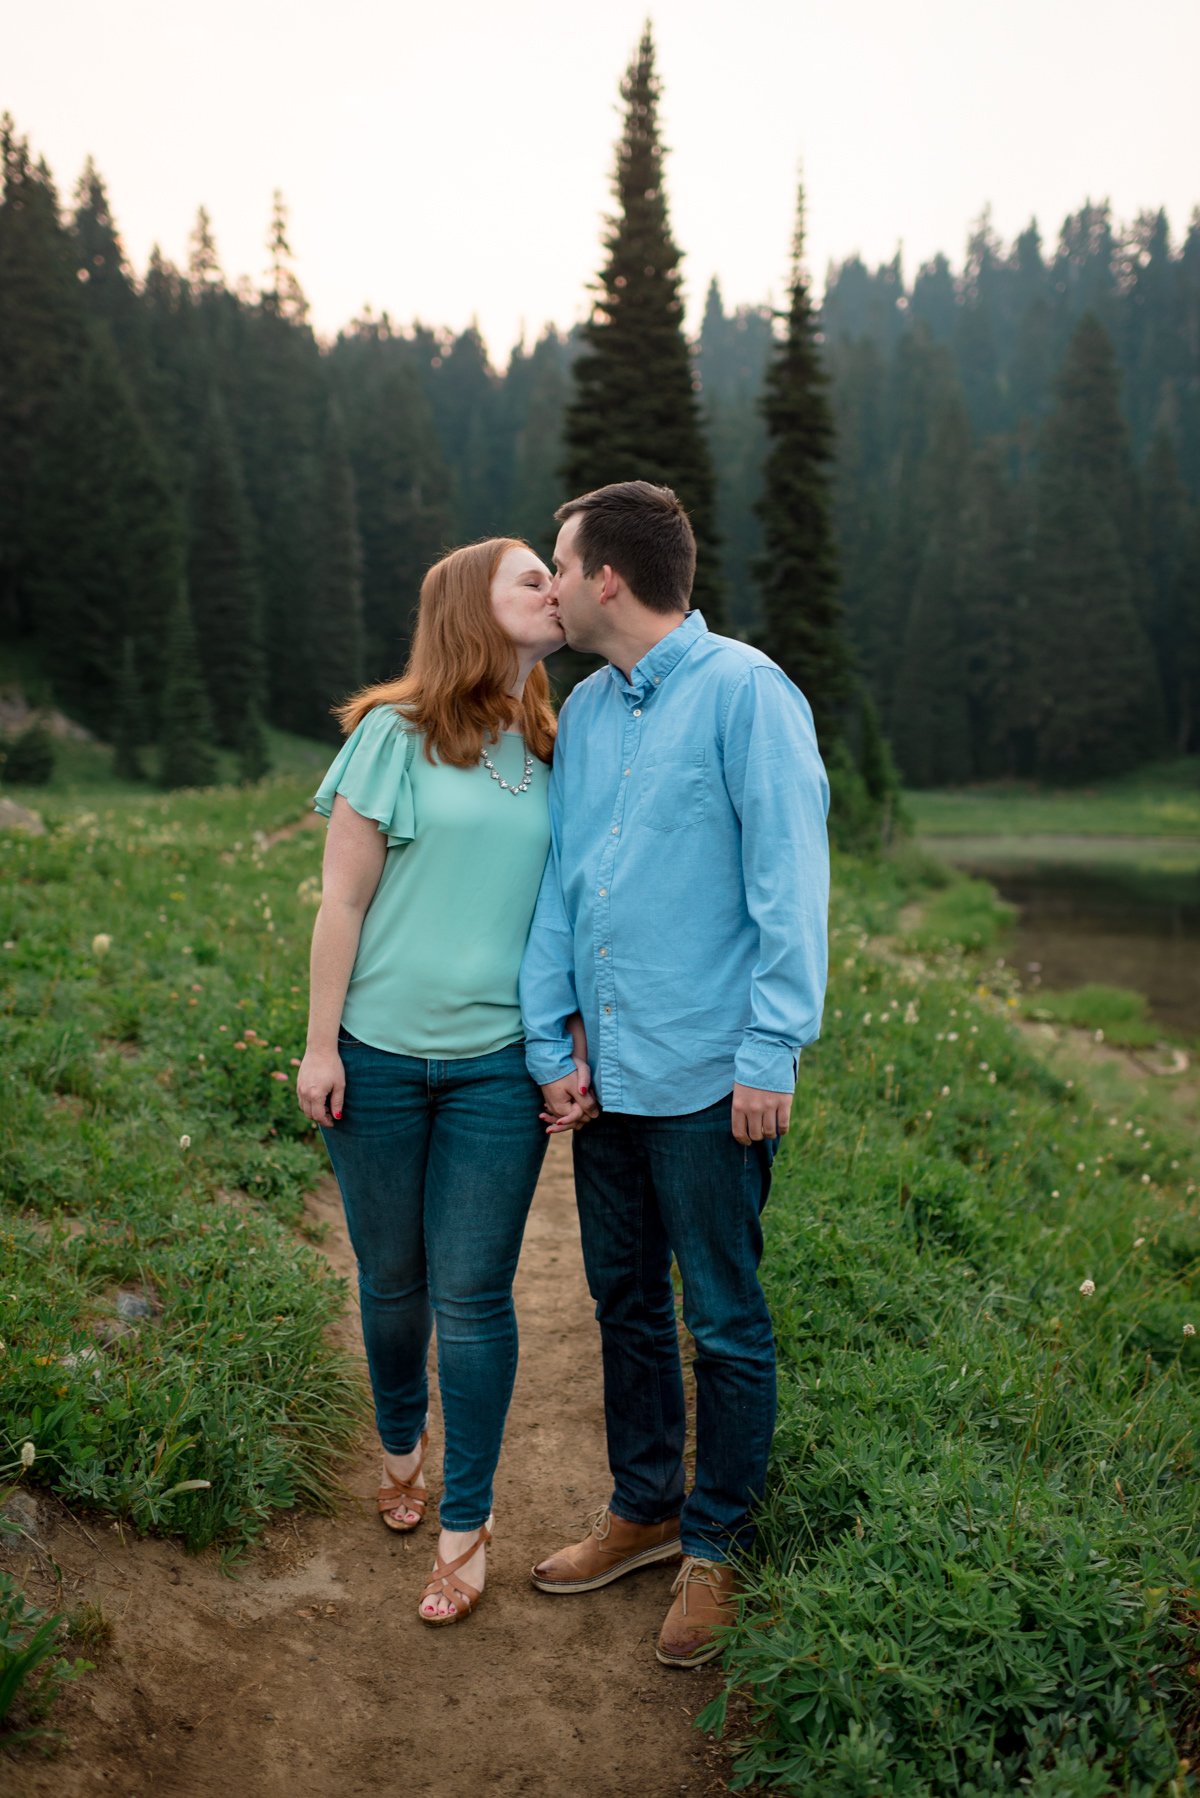 Andrew Tat - Documentary Wedding Photography - Tipsoo Lake - Mount Rainier National Park, Washington - Erin & Robert - 09.JPG